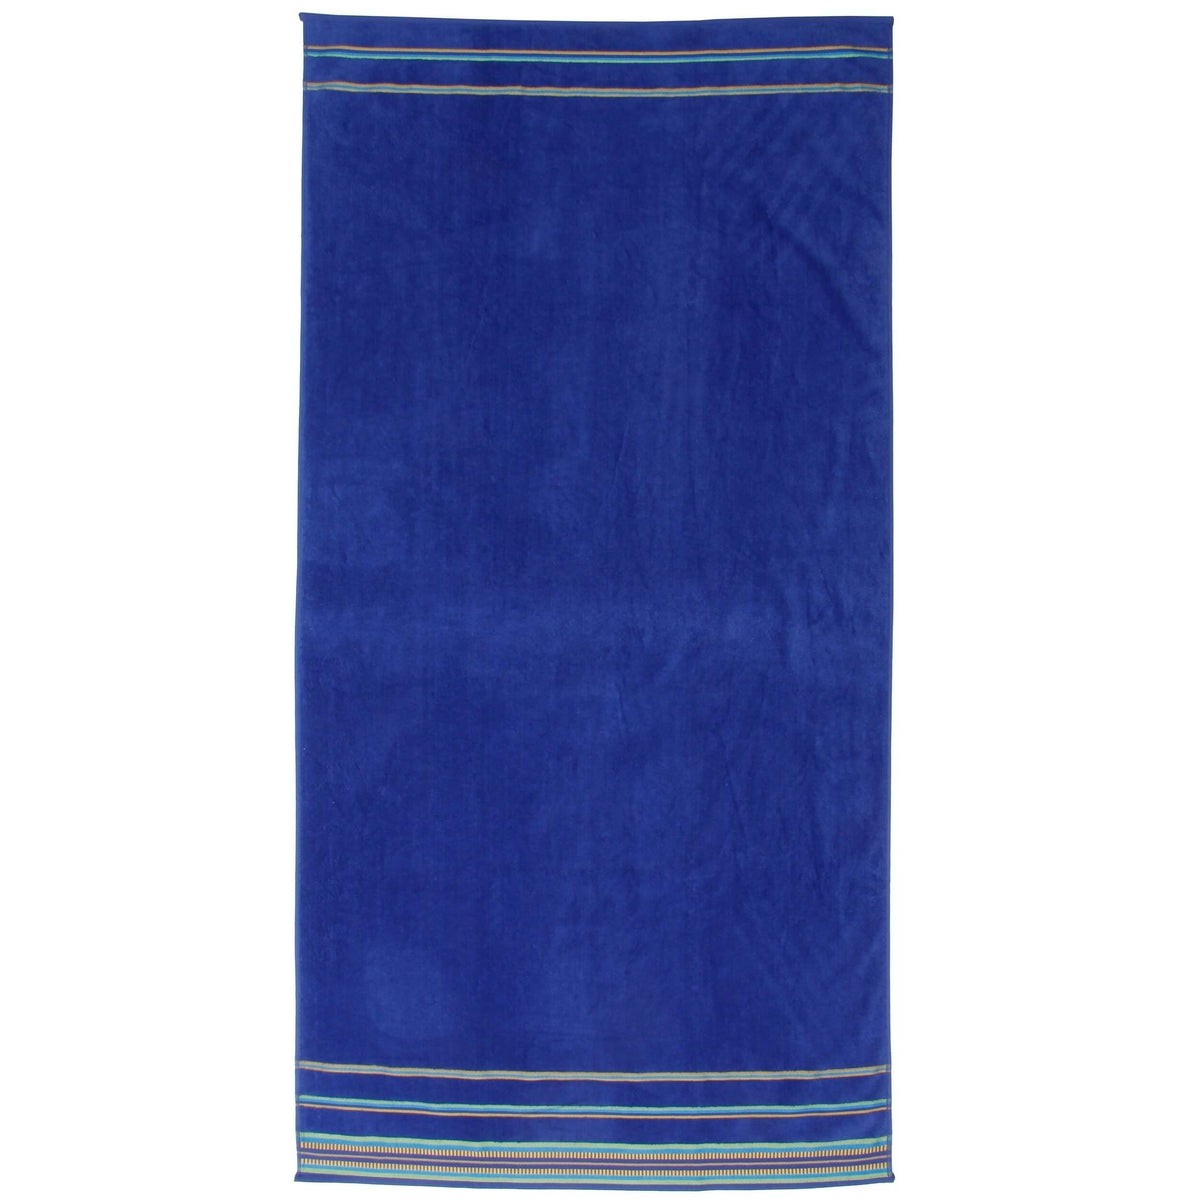 "Oversize 40"" x 70""Beach & Pool Towels"